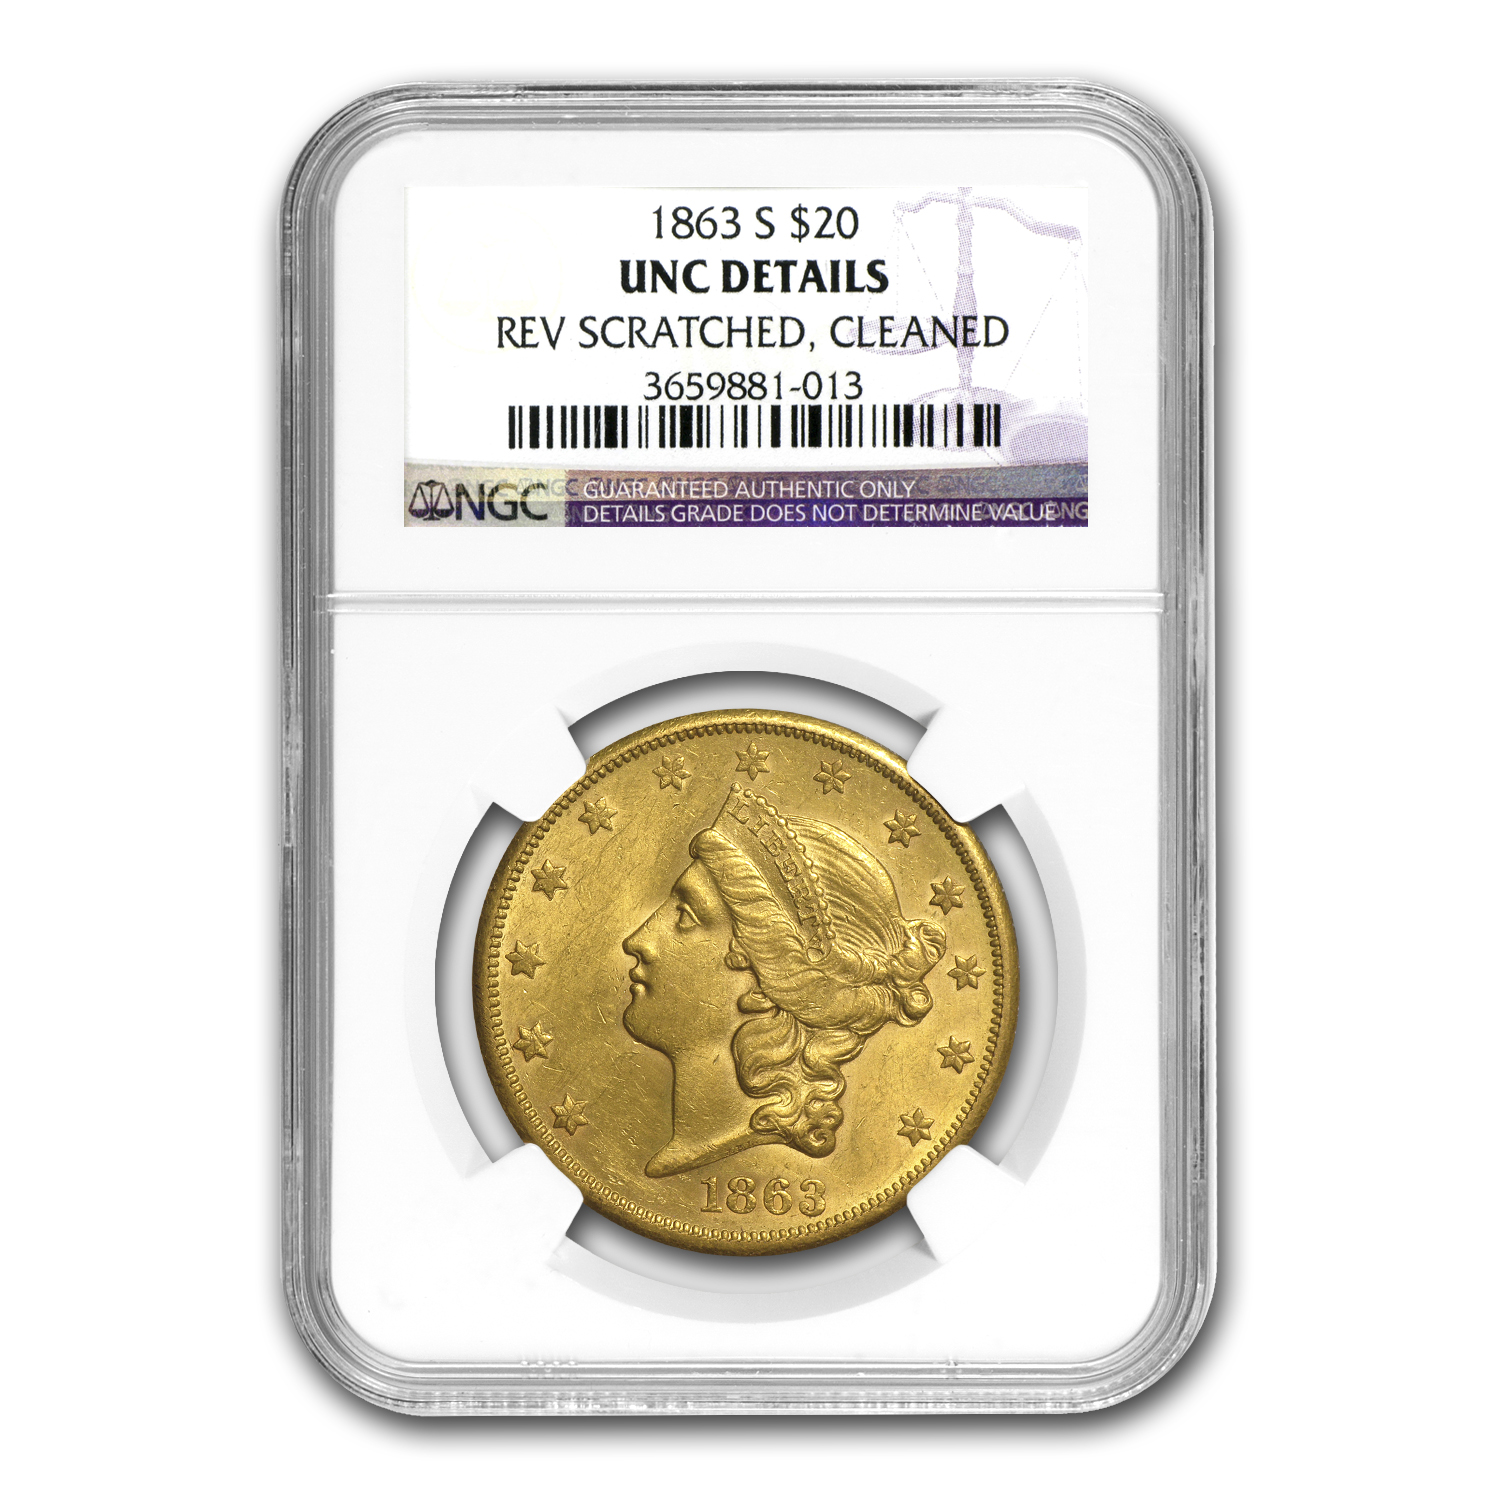 1863-S $20 Liberty Gold Dble Eagle BU Detail NGC (Scratch, Clnd)